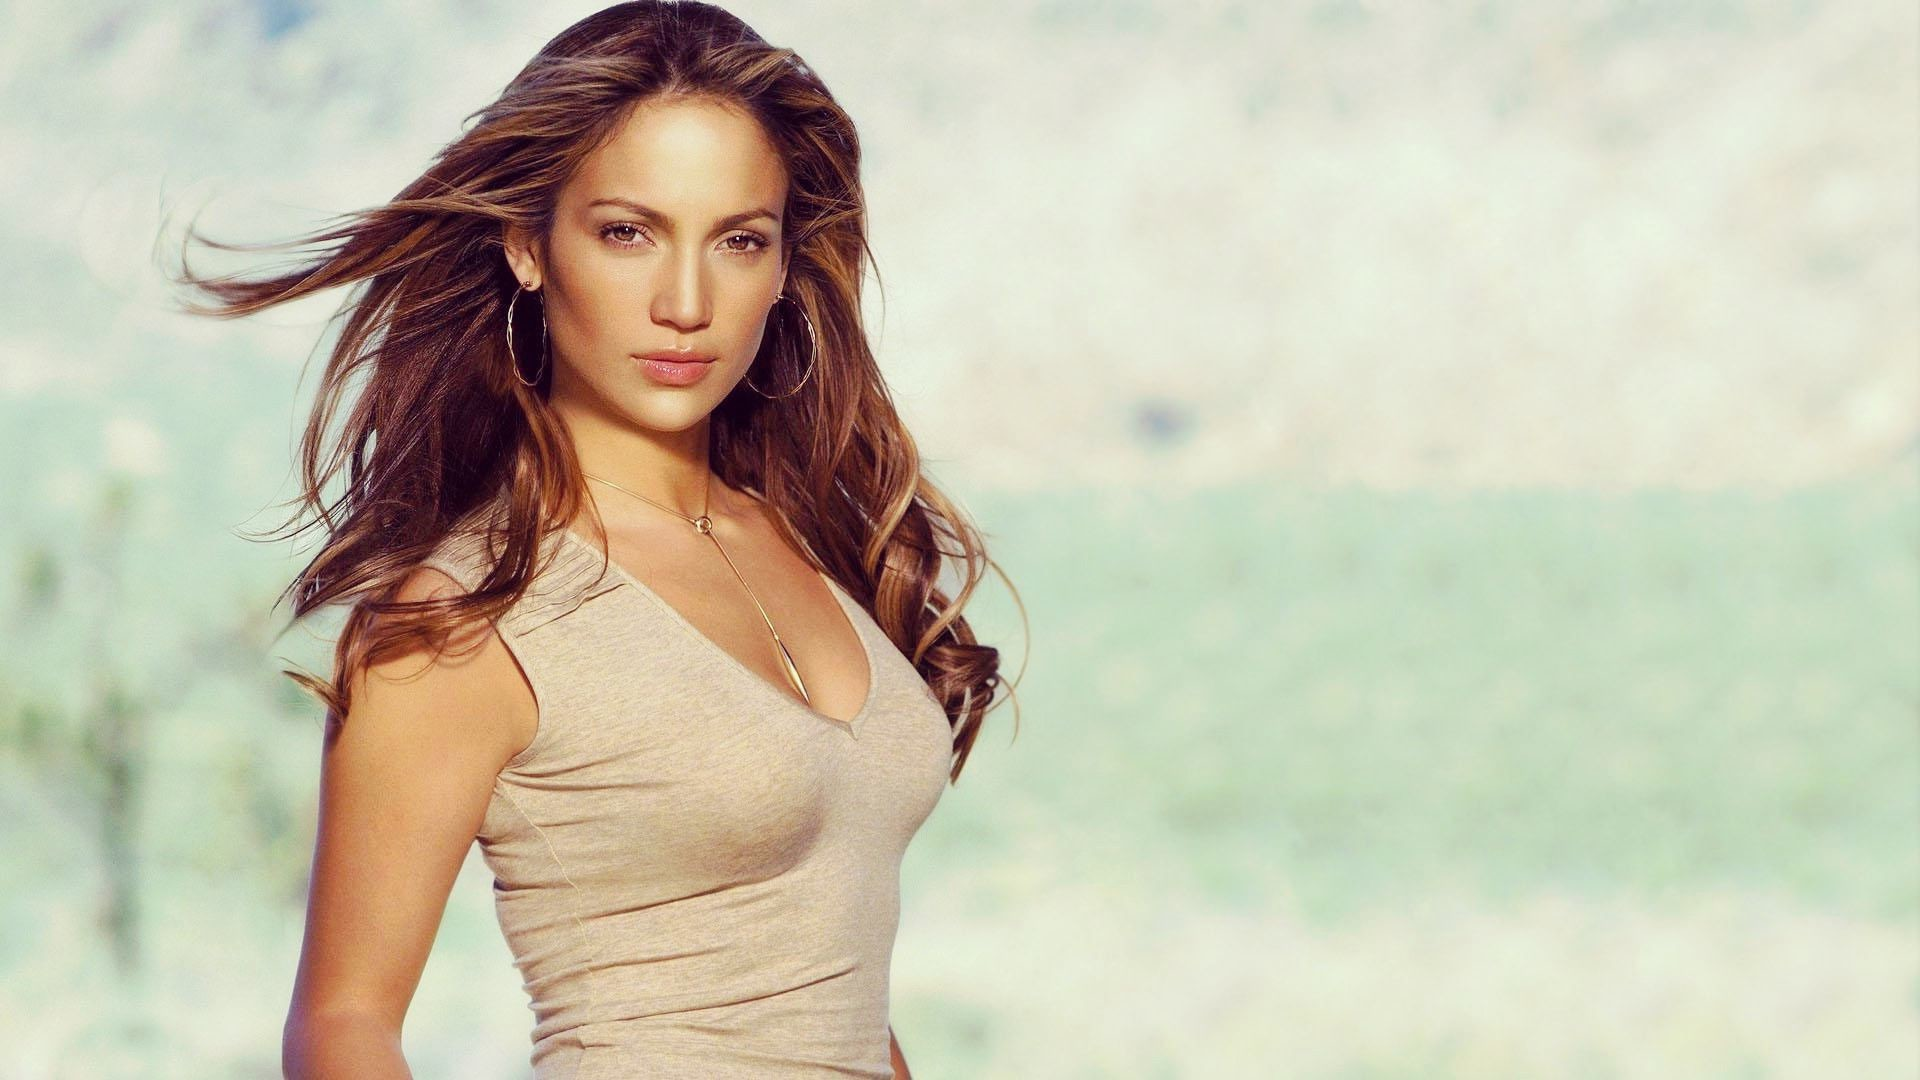 1920x1080 Jennifer Lopez Wallpapers Page HD Wallpapers Jennifer Lopez Wallpapers